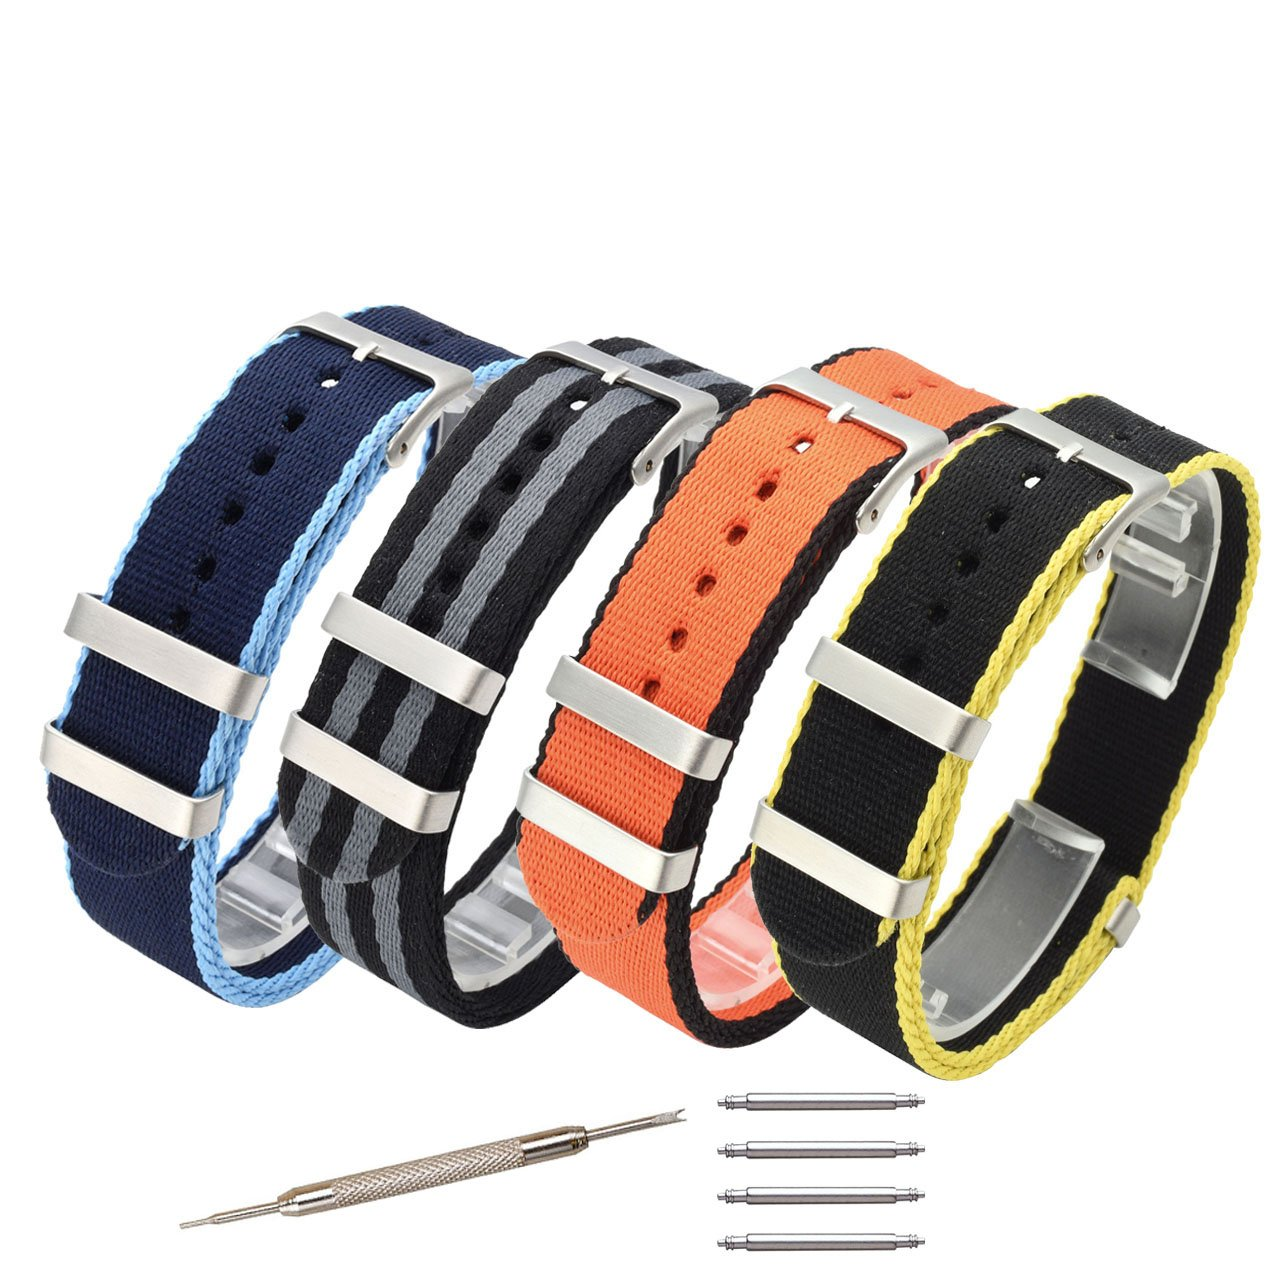 Top Plaza 20mm NATO Nylon Watch Band, Quick Release Premium Ballistic Nylon Straps, Replacement Wristband with Adjustable Metal Clasp for Men Women - Pack of 4#1